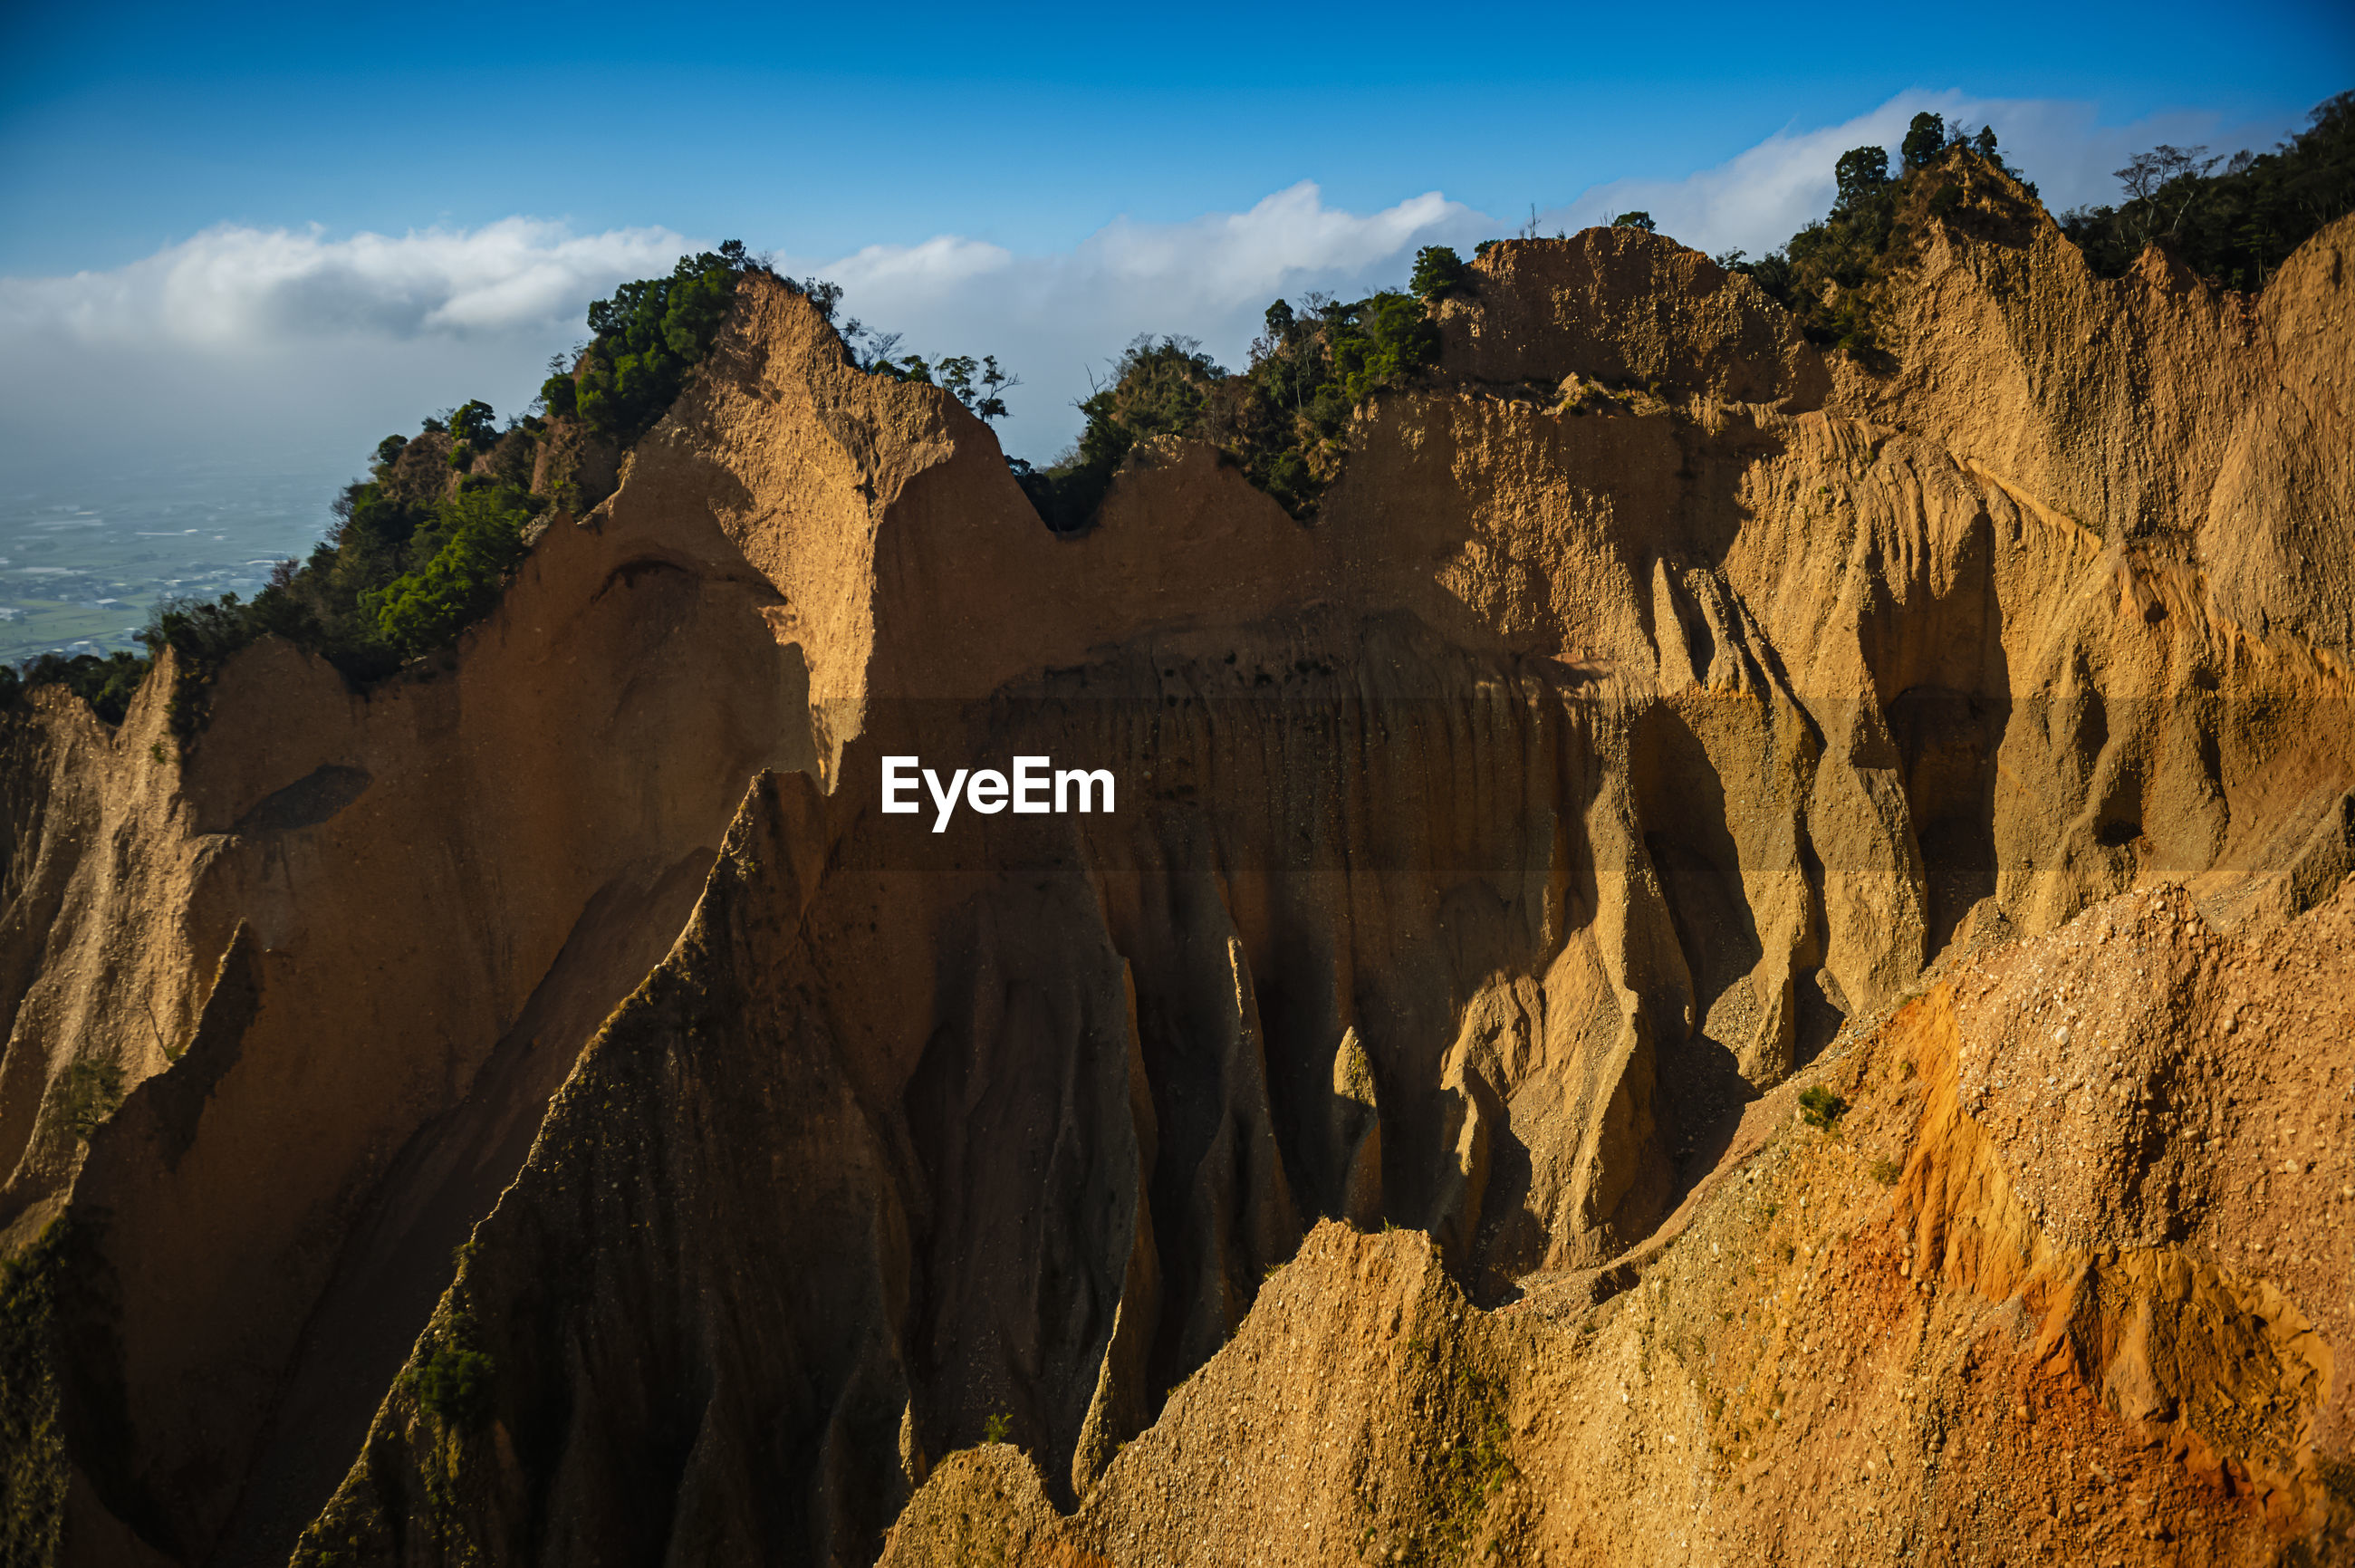 PANORAMIC VIEW OF ROCK FORMATION